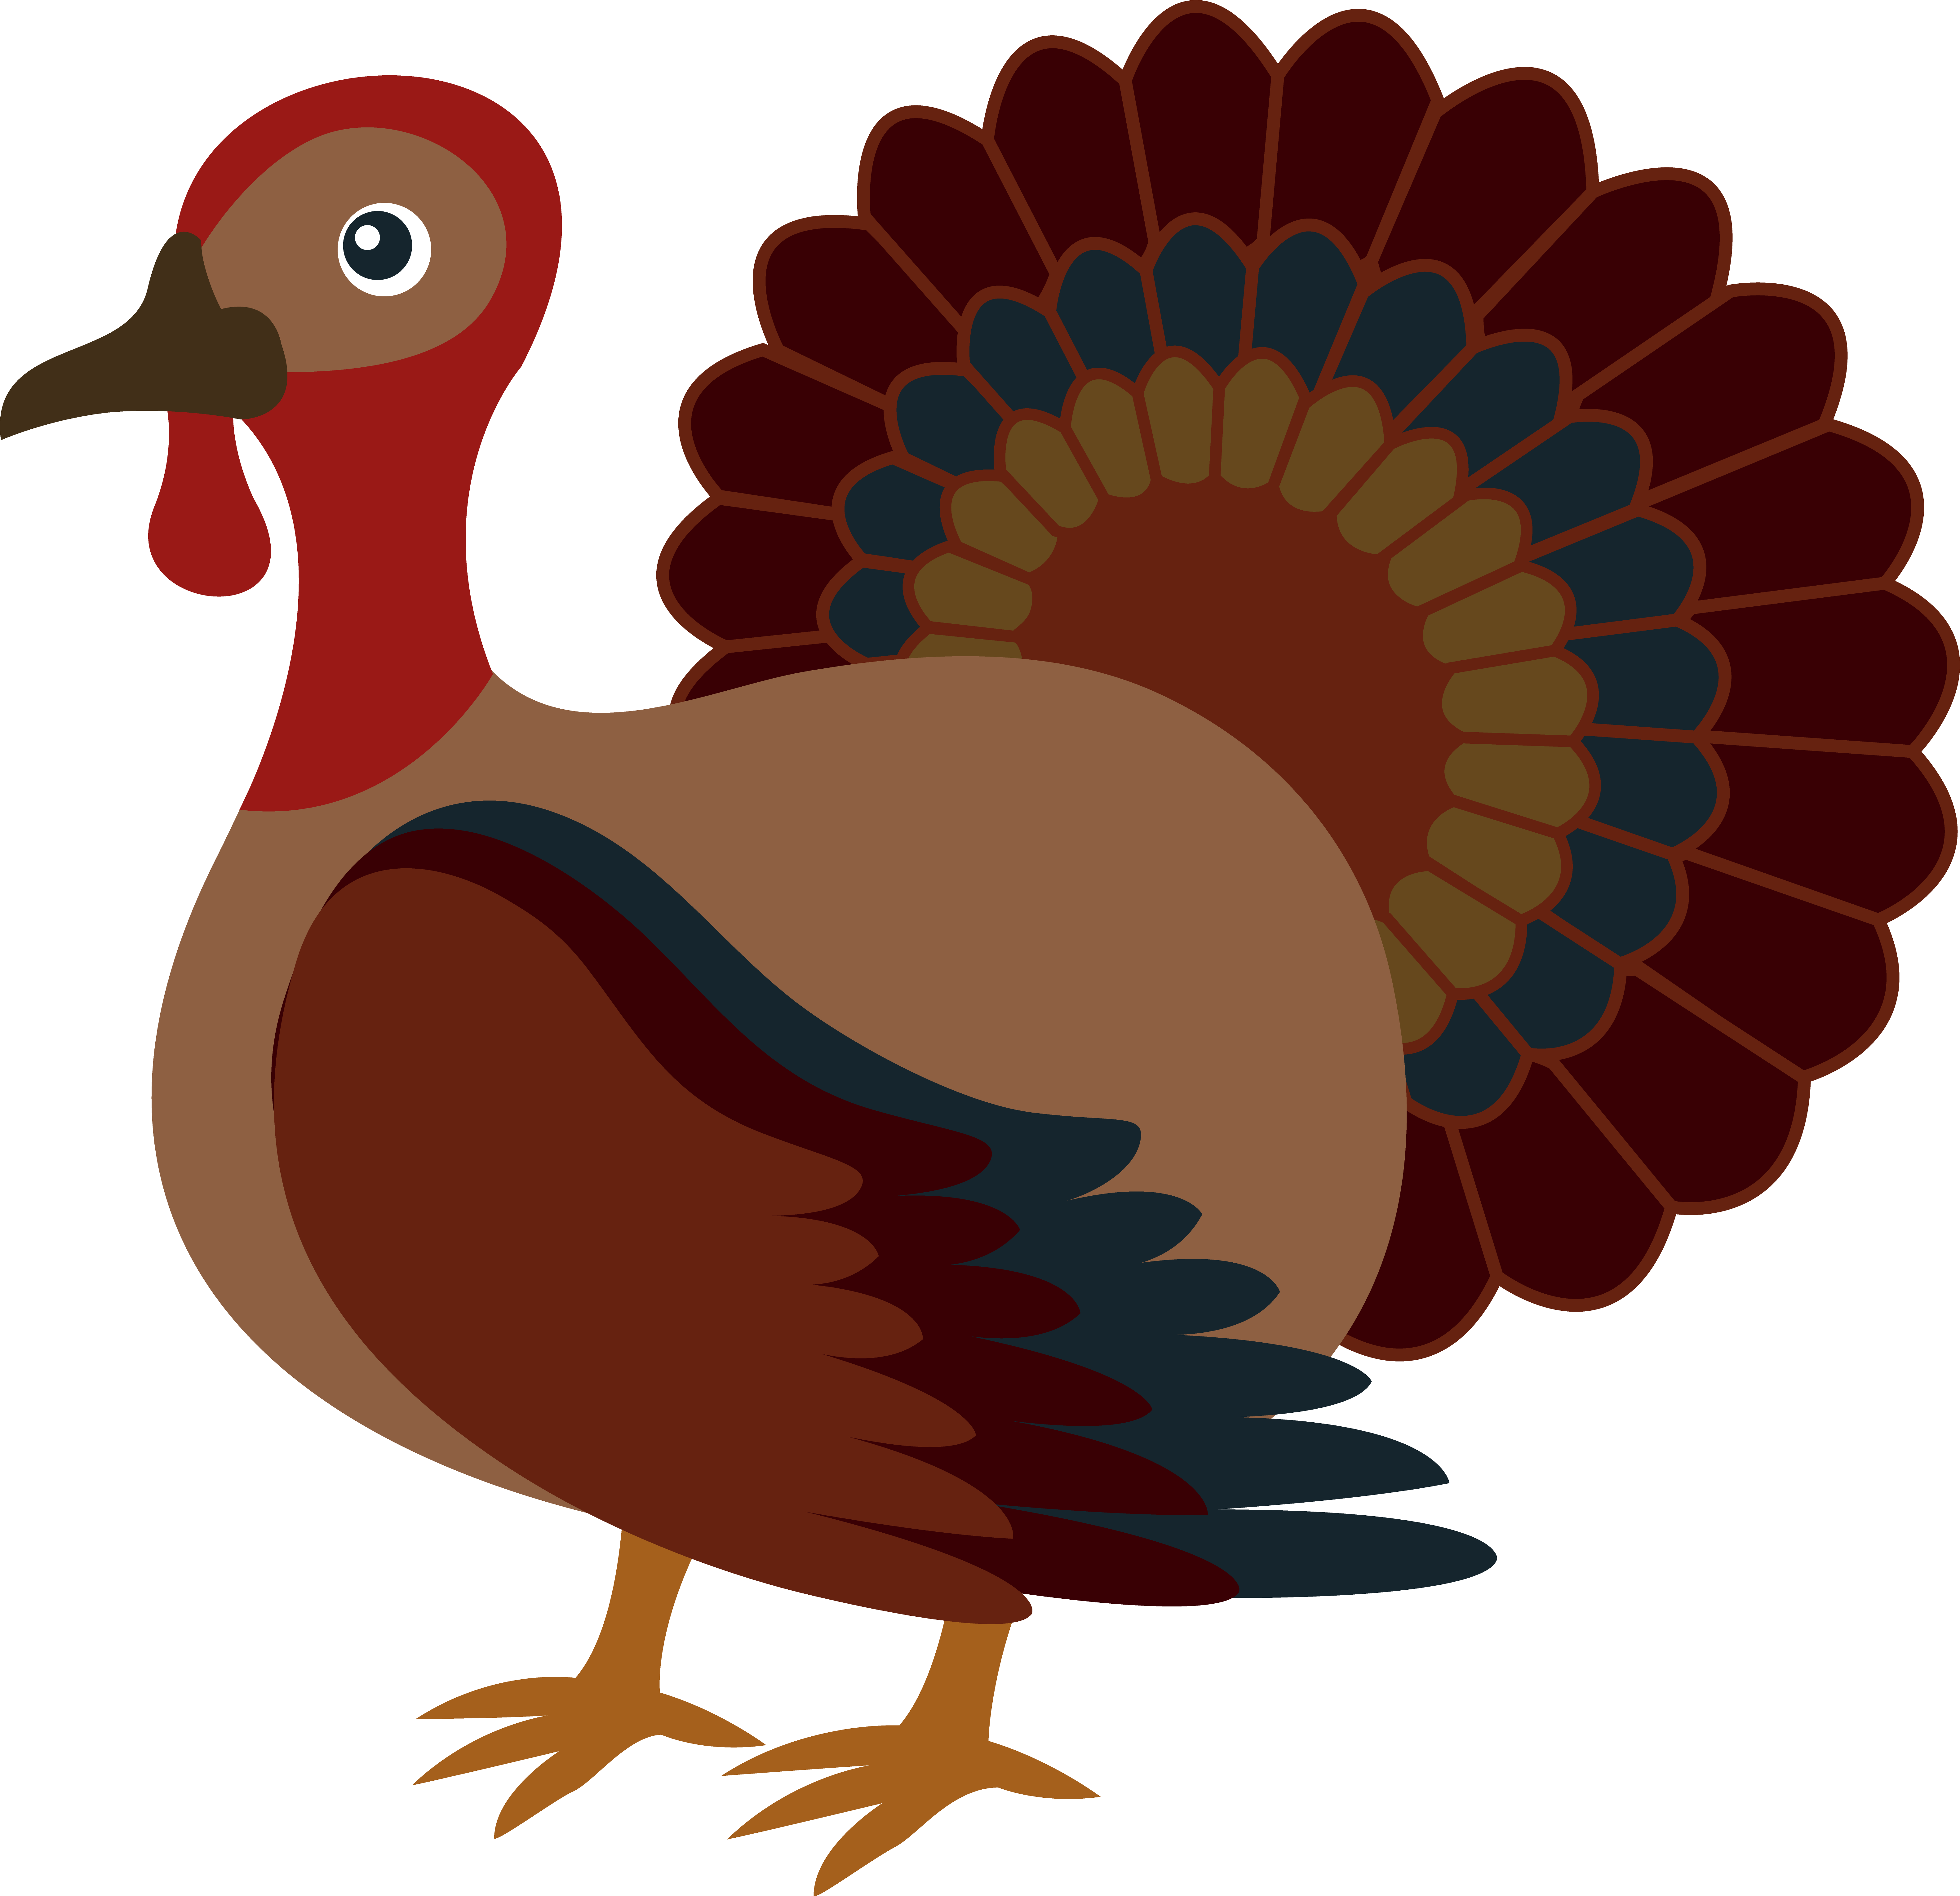 Download For Free Turkey Png In High Resolution